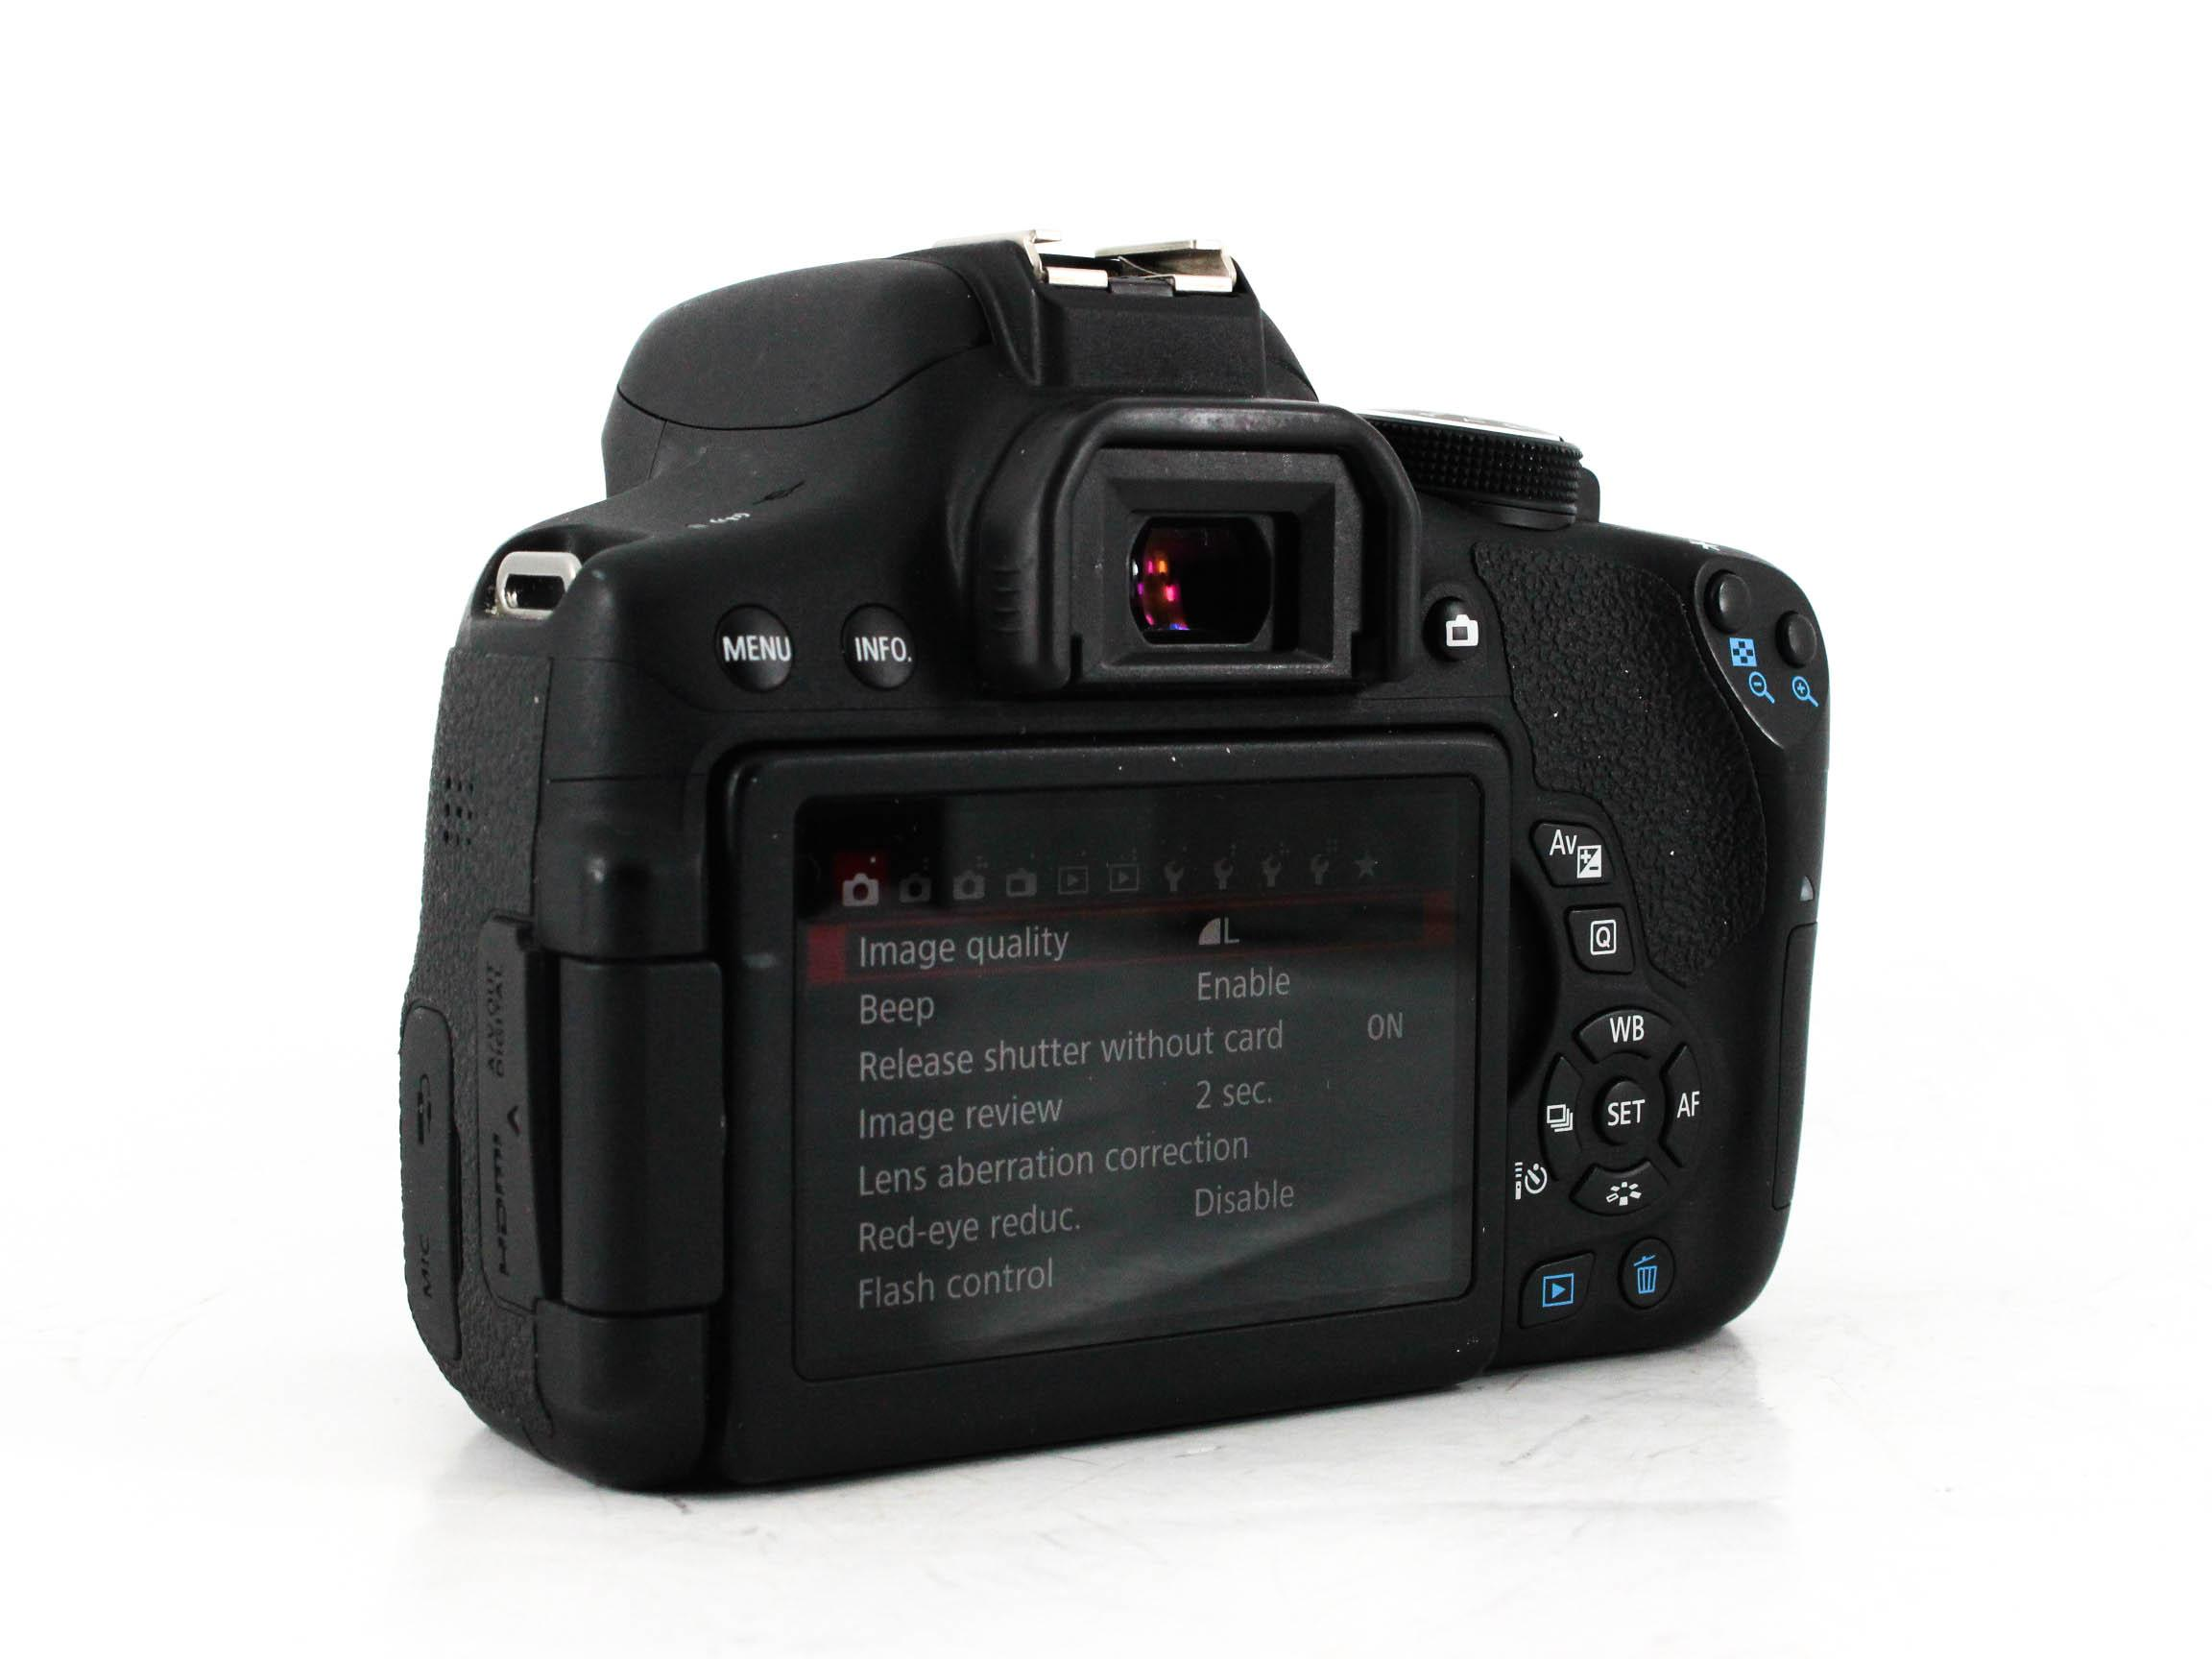 canon eos rebel t7i back image